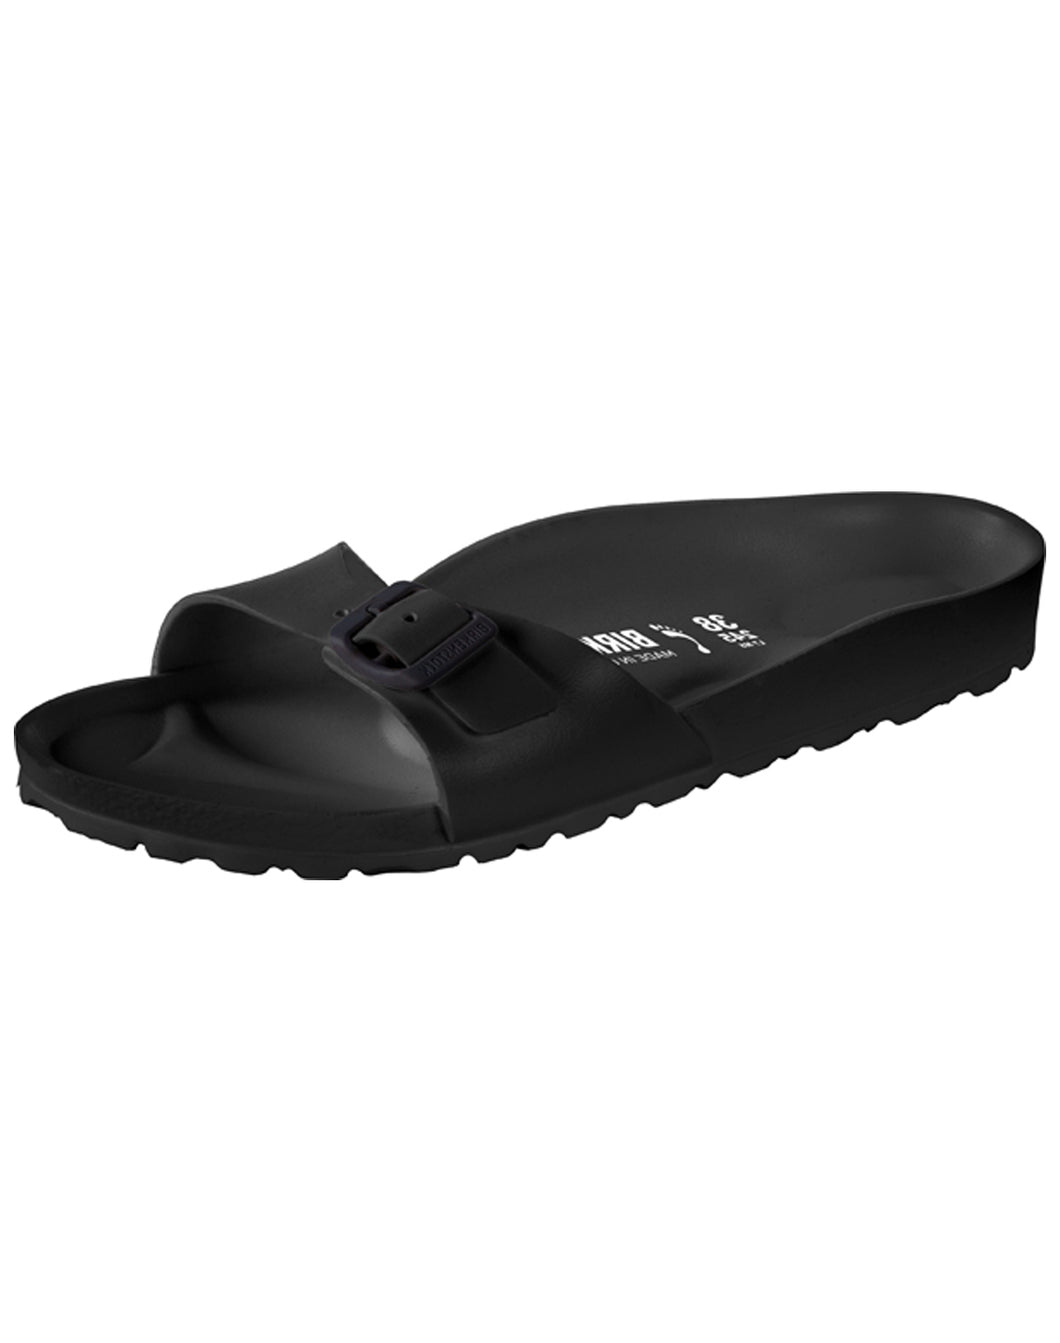 BIRKENSTOCK MADRID BLACK EVA NARROW